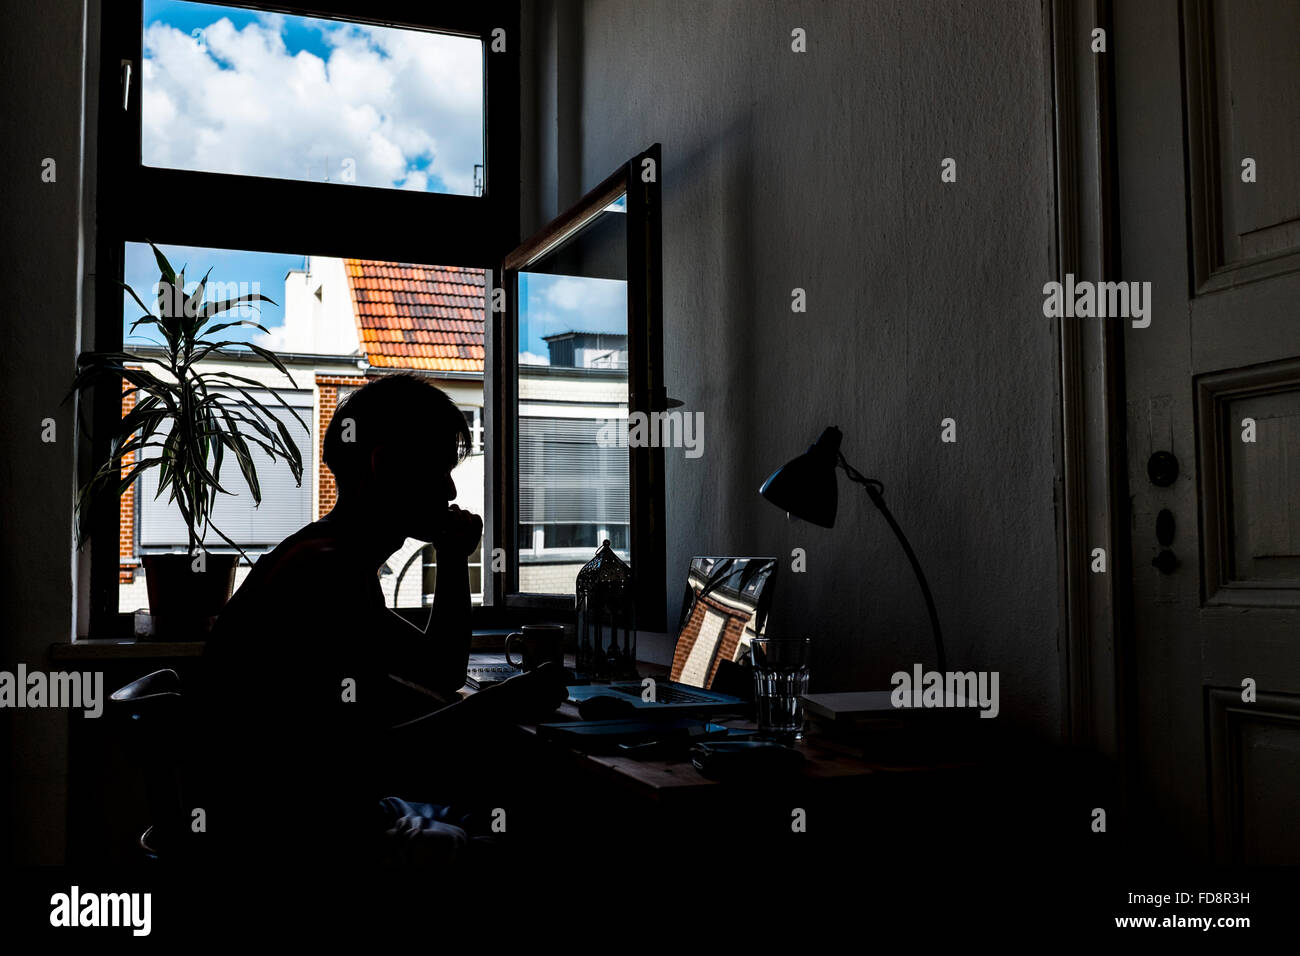 Silhouette Of Man Using Laptop At Desk - Stock Image